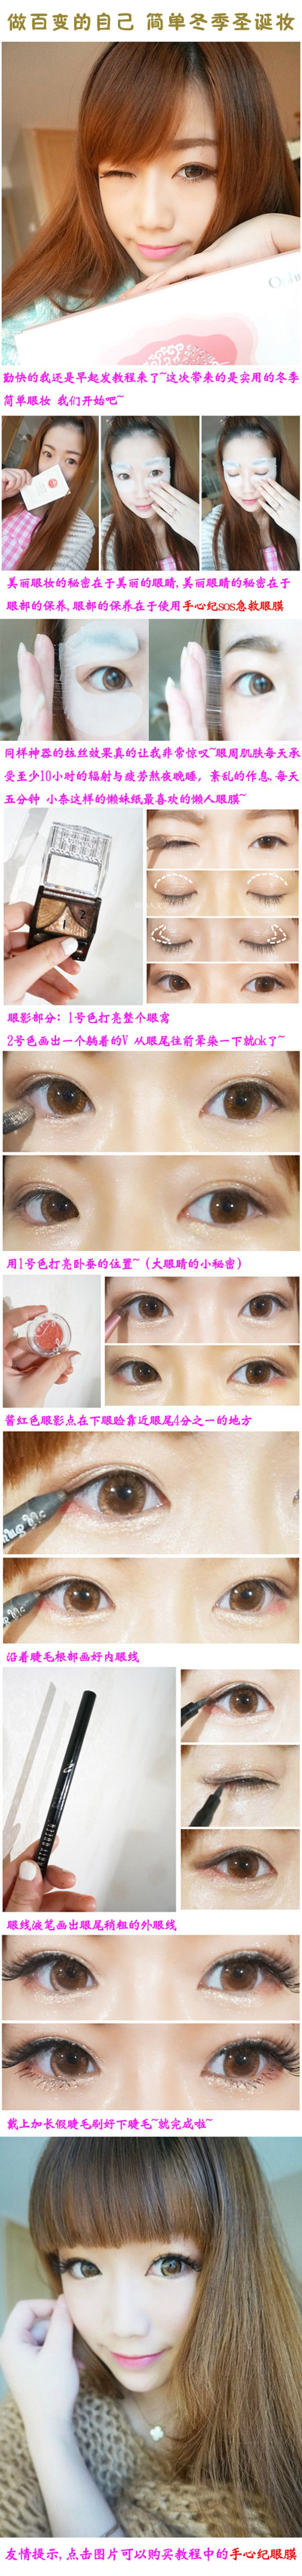 Asian makeup tutorial, a pink undereye highlight is super trendy right now